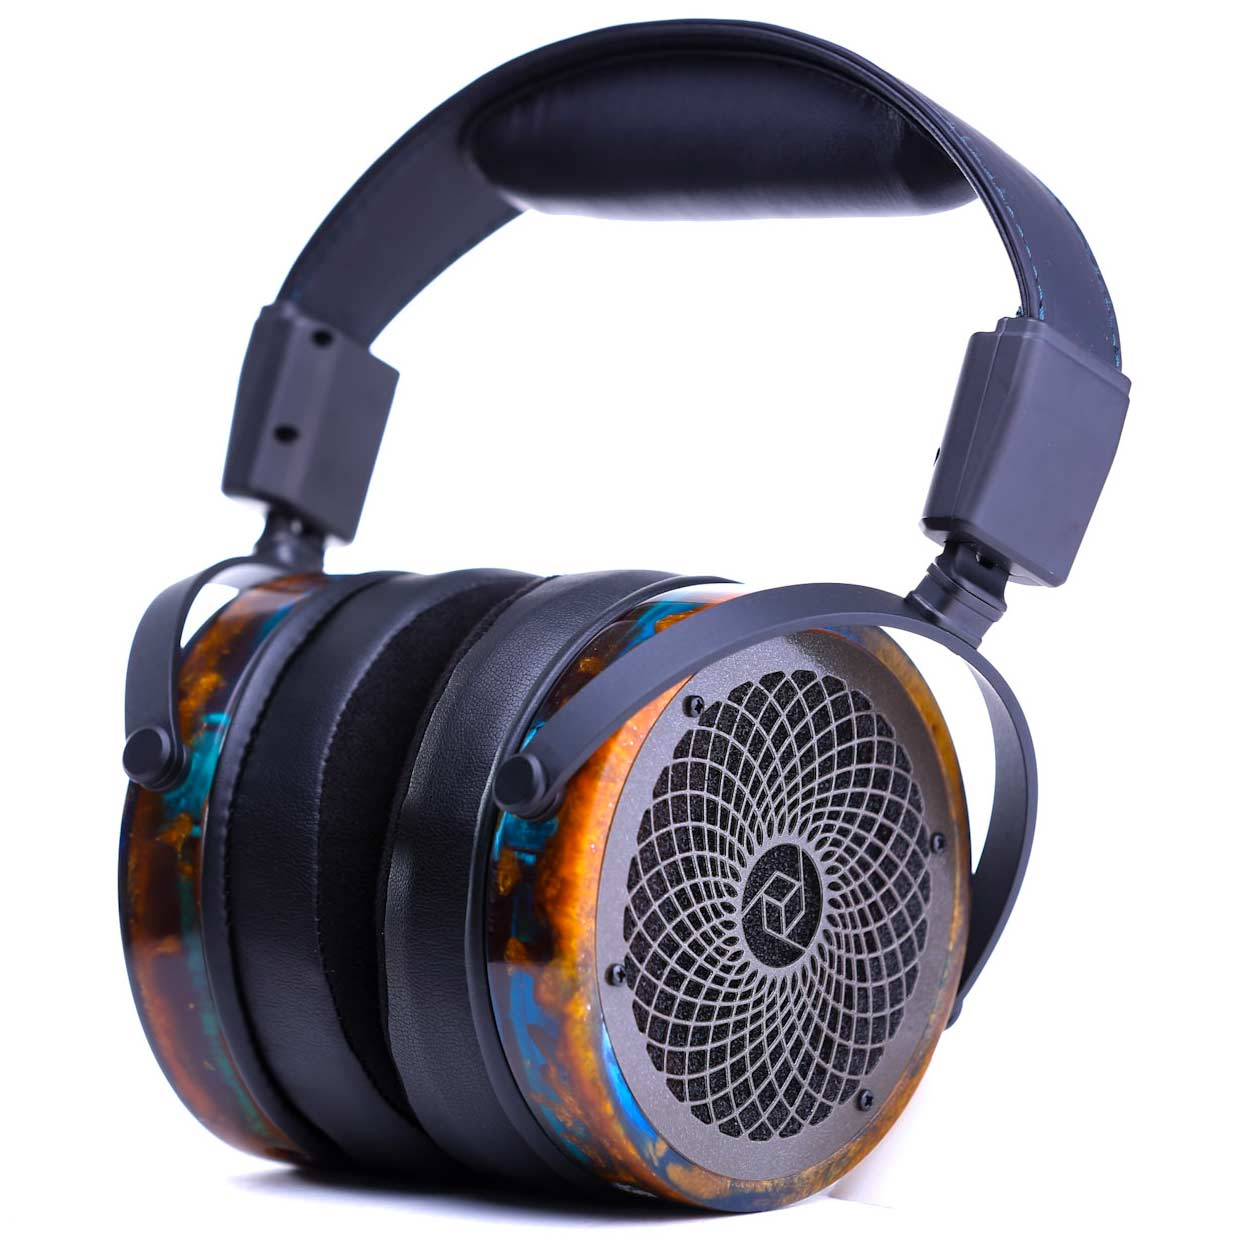 Rosson Audio Design RAD-0 Planar Magnetic Headphones